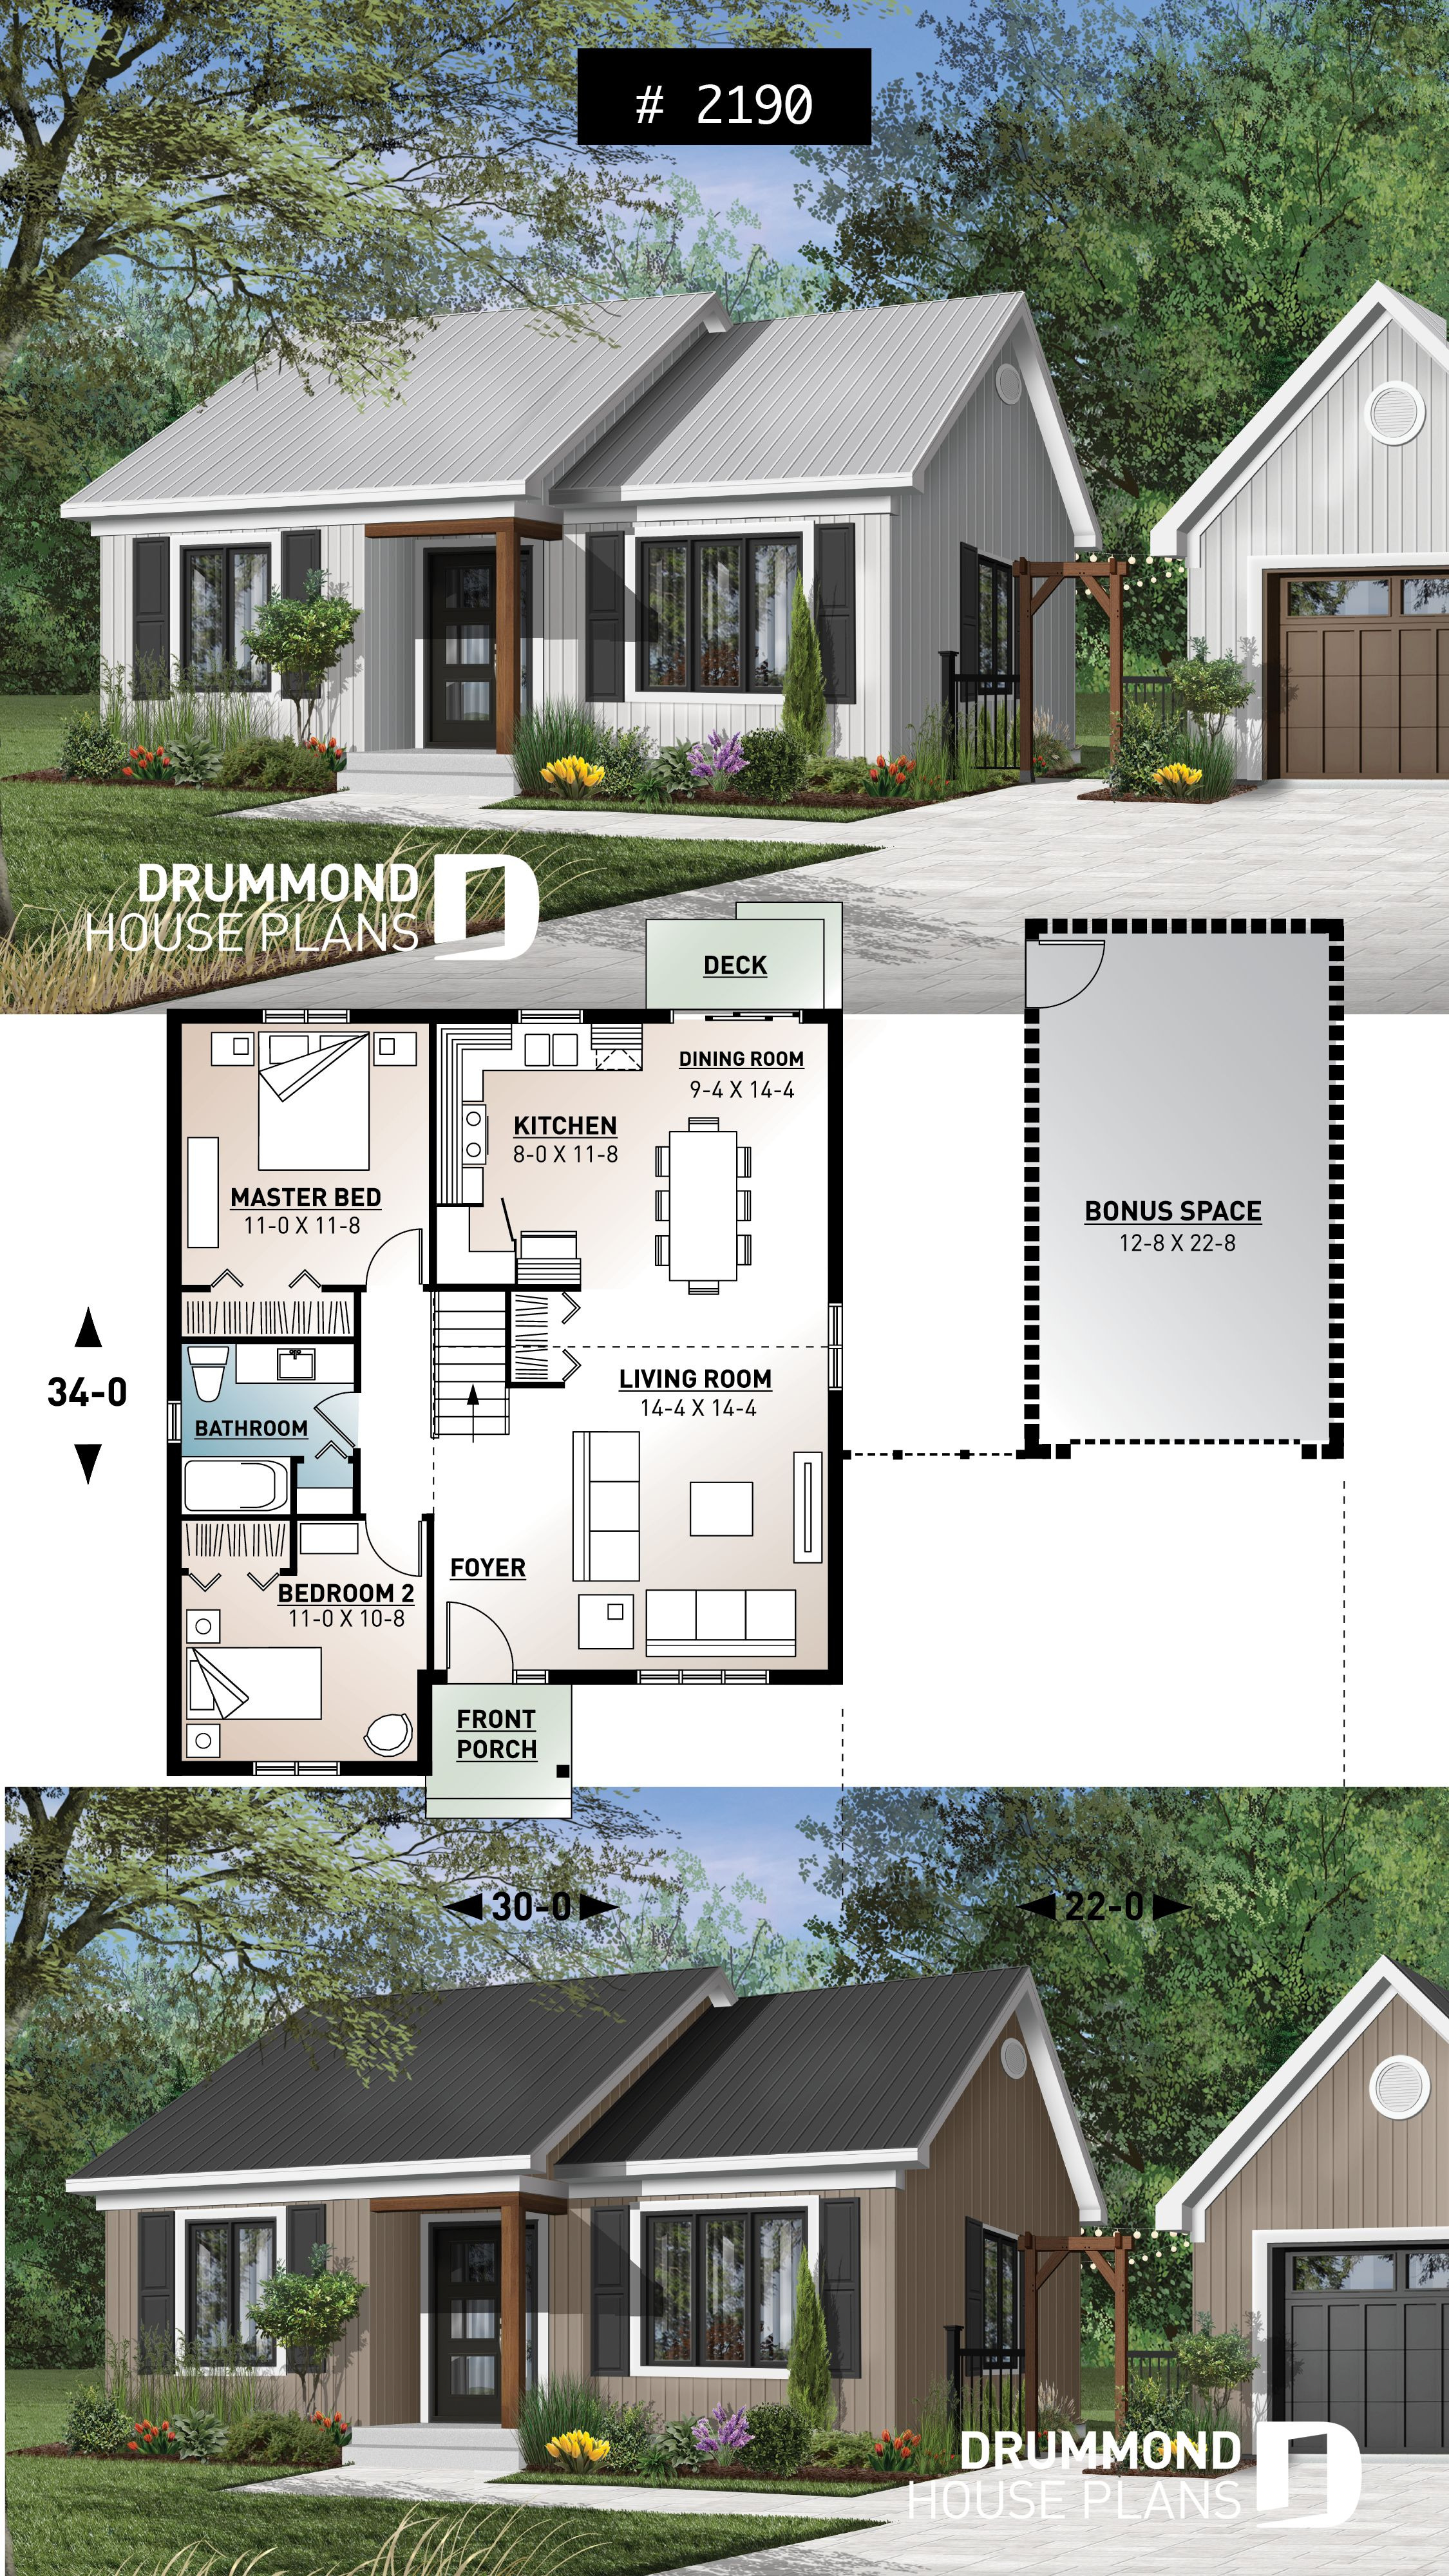 Ranch Style House Plans with Open Floor Plans Best Of House Plan St Laurent No 2190